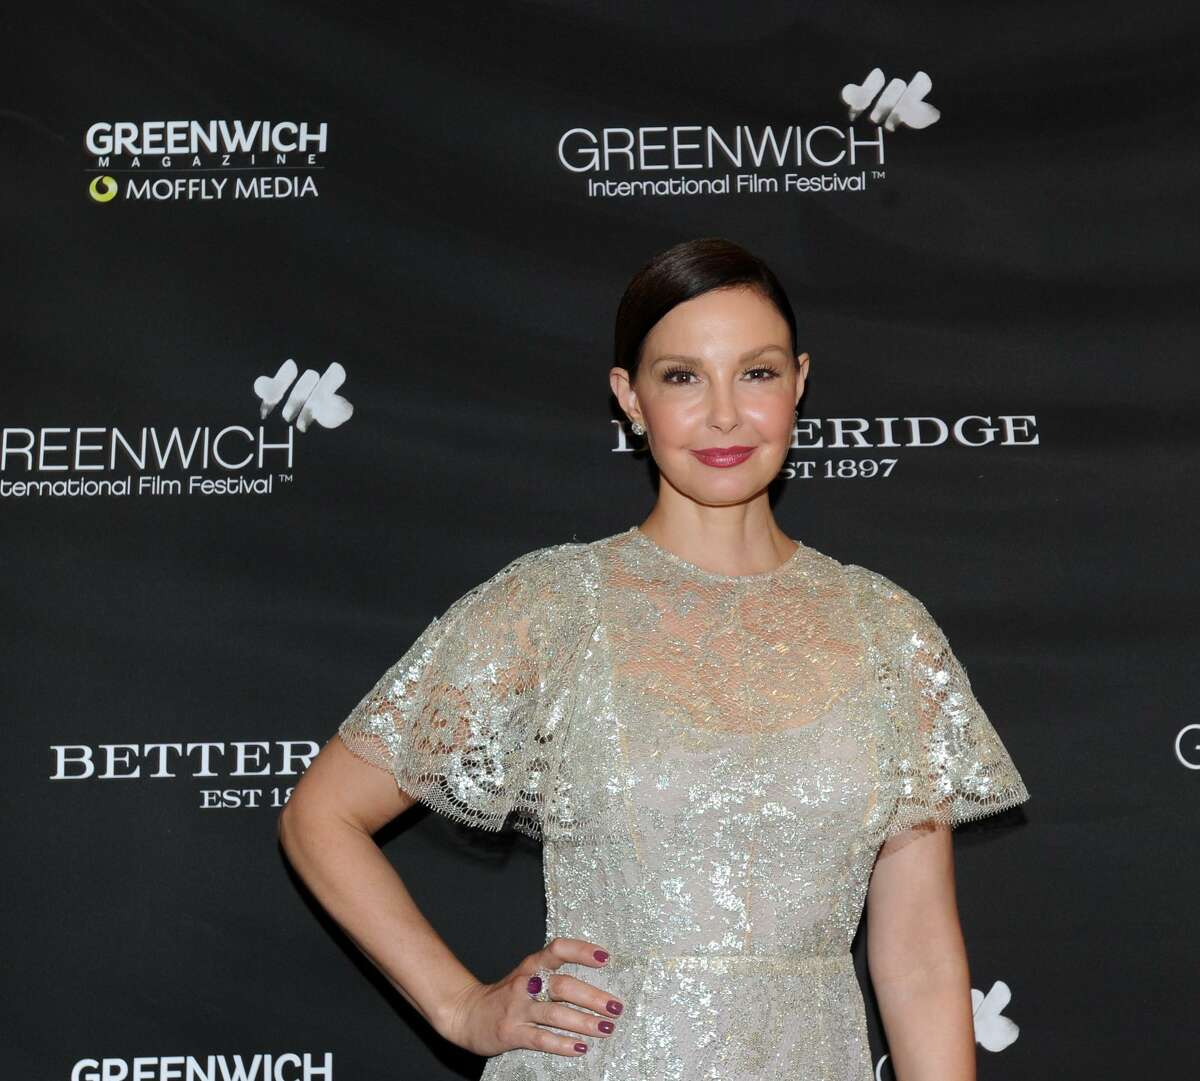 Ashley Judd during the Greenwich International Film Festival Changemaker Gala at Betteridge Jewelers in Greenwich, Conn., Thursday, May 31, 2018. The gala honored actress and activist honoring Judd. The 2019 gala will honor actress Eva Longoria Baston and Greenwich's Bobby Walker Jr.